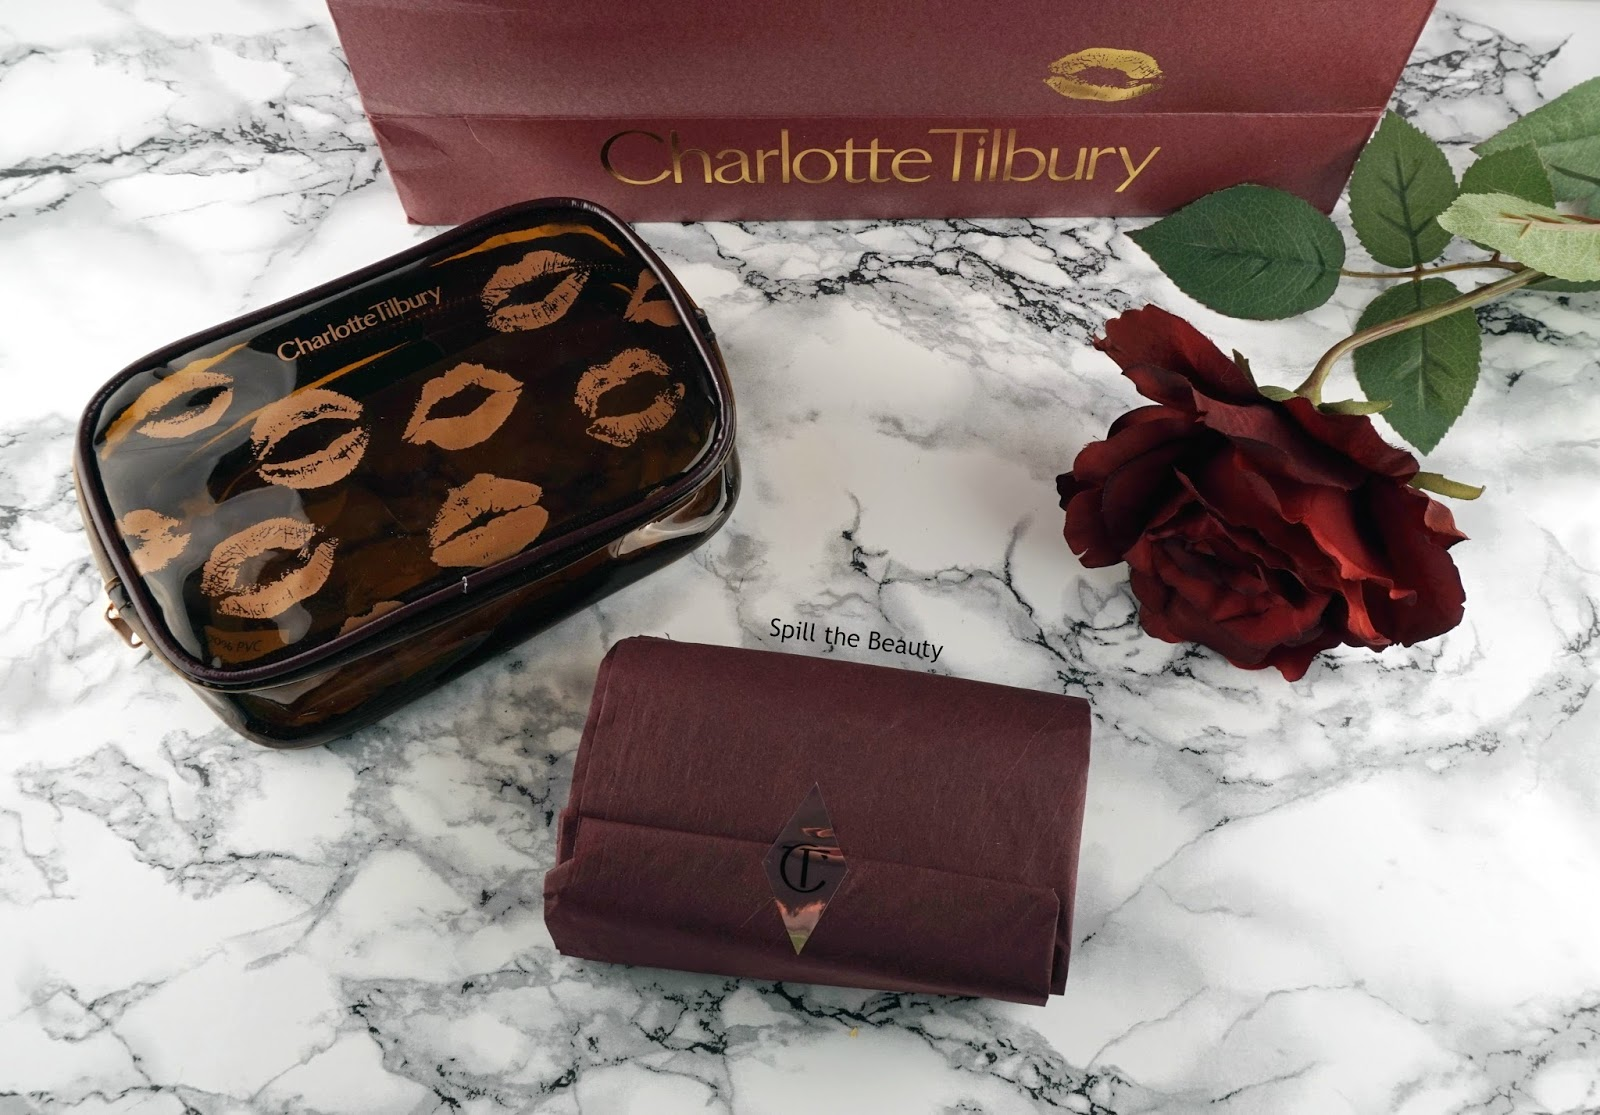 Charlotte Tilbury Quick 'n' Easy 5 Minute Makeup Revolution – Review, and Look